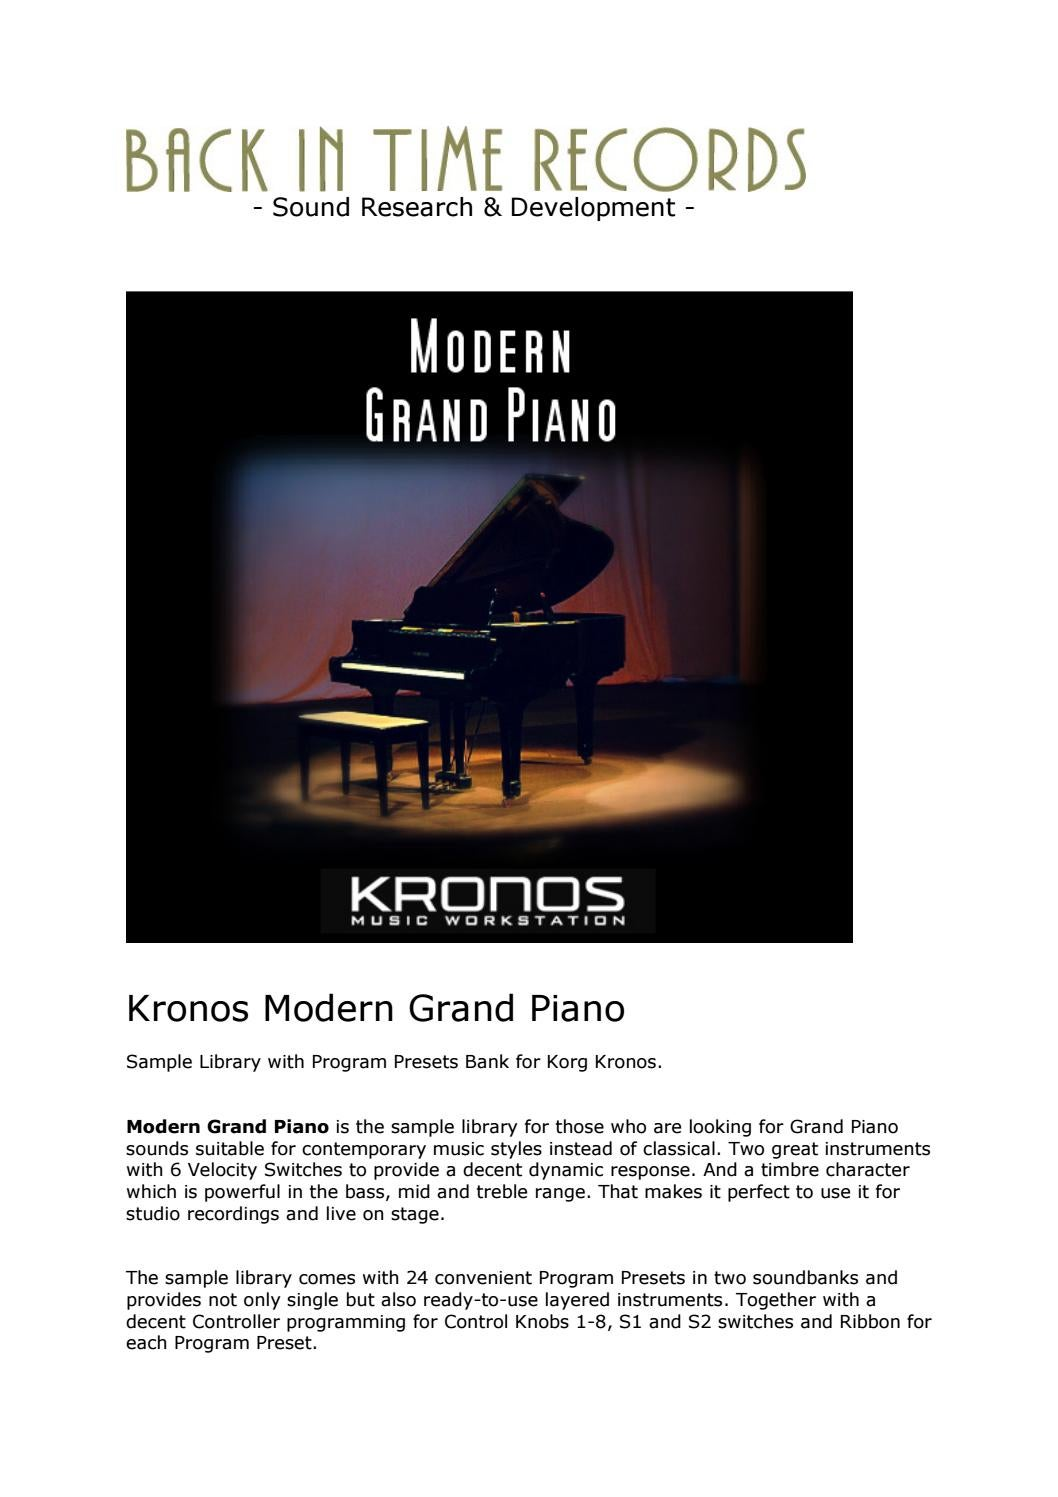 Kronos Modern Grand Piano Complete Content by Back In Time